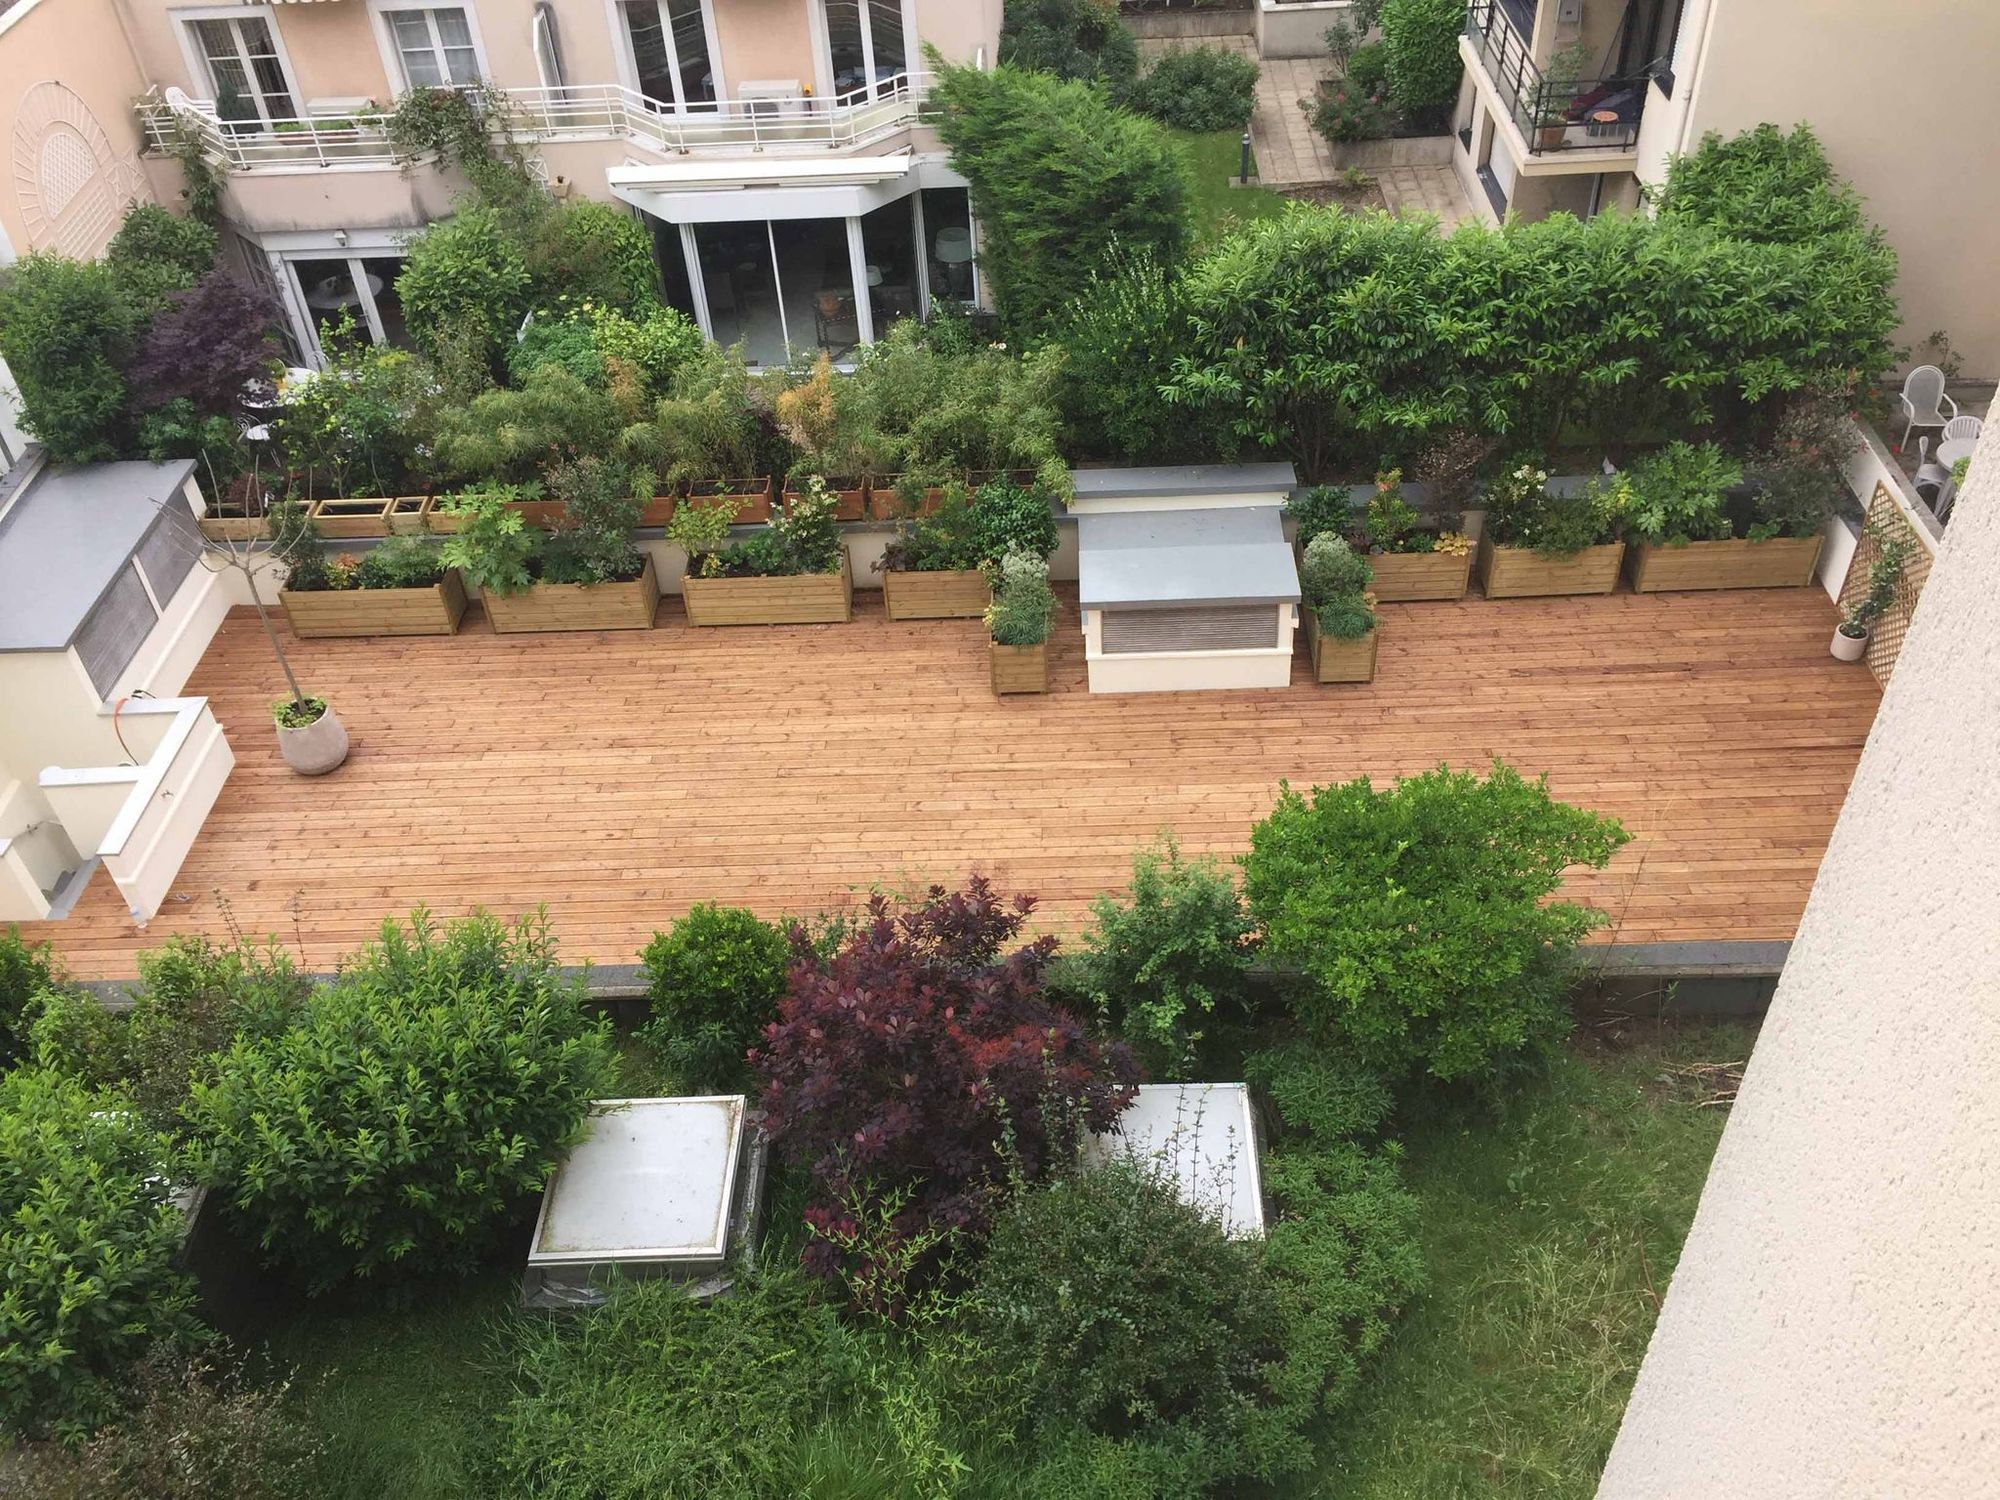 Aménager Une Grande Terrasse : 10 Solutions Possibles ... destiné Amenager Une Grande Terrasse